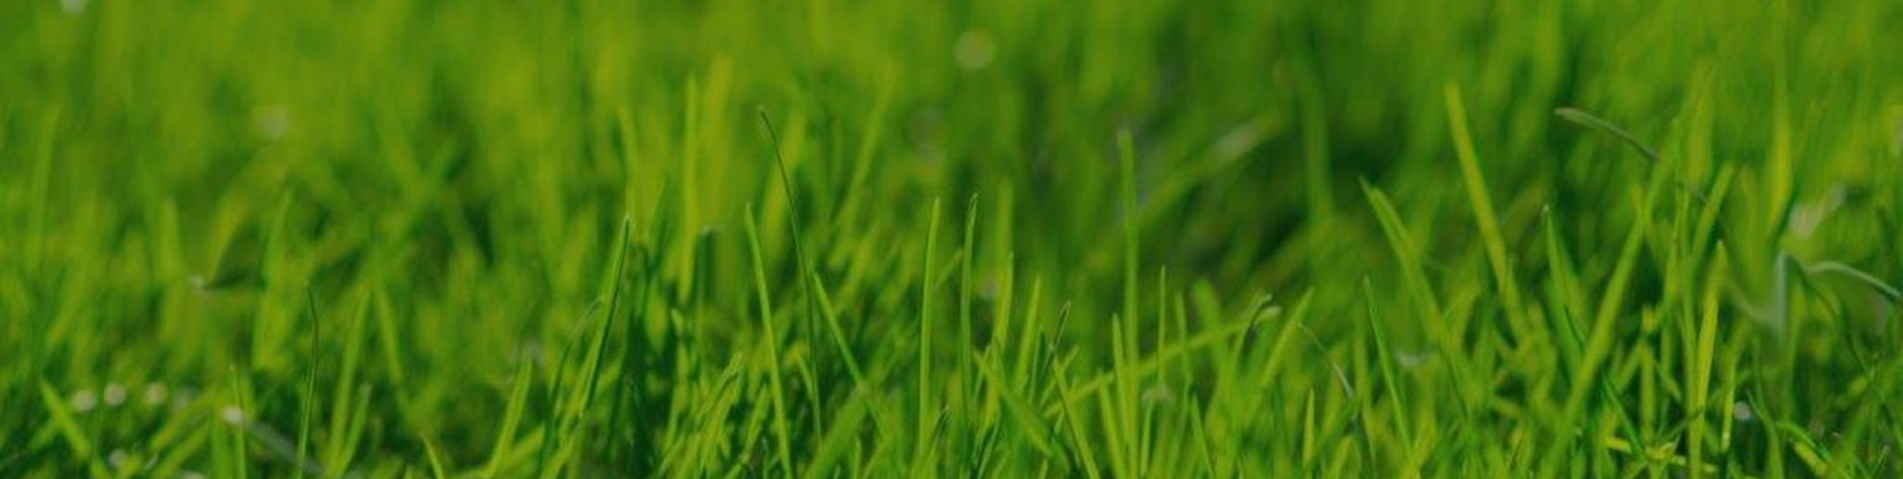 Grass-background-with-dark-filter-image-no-text.jpg